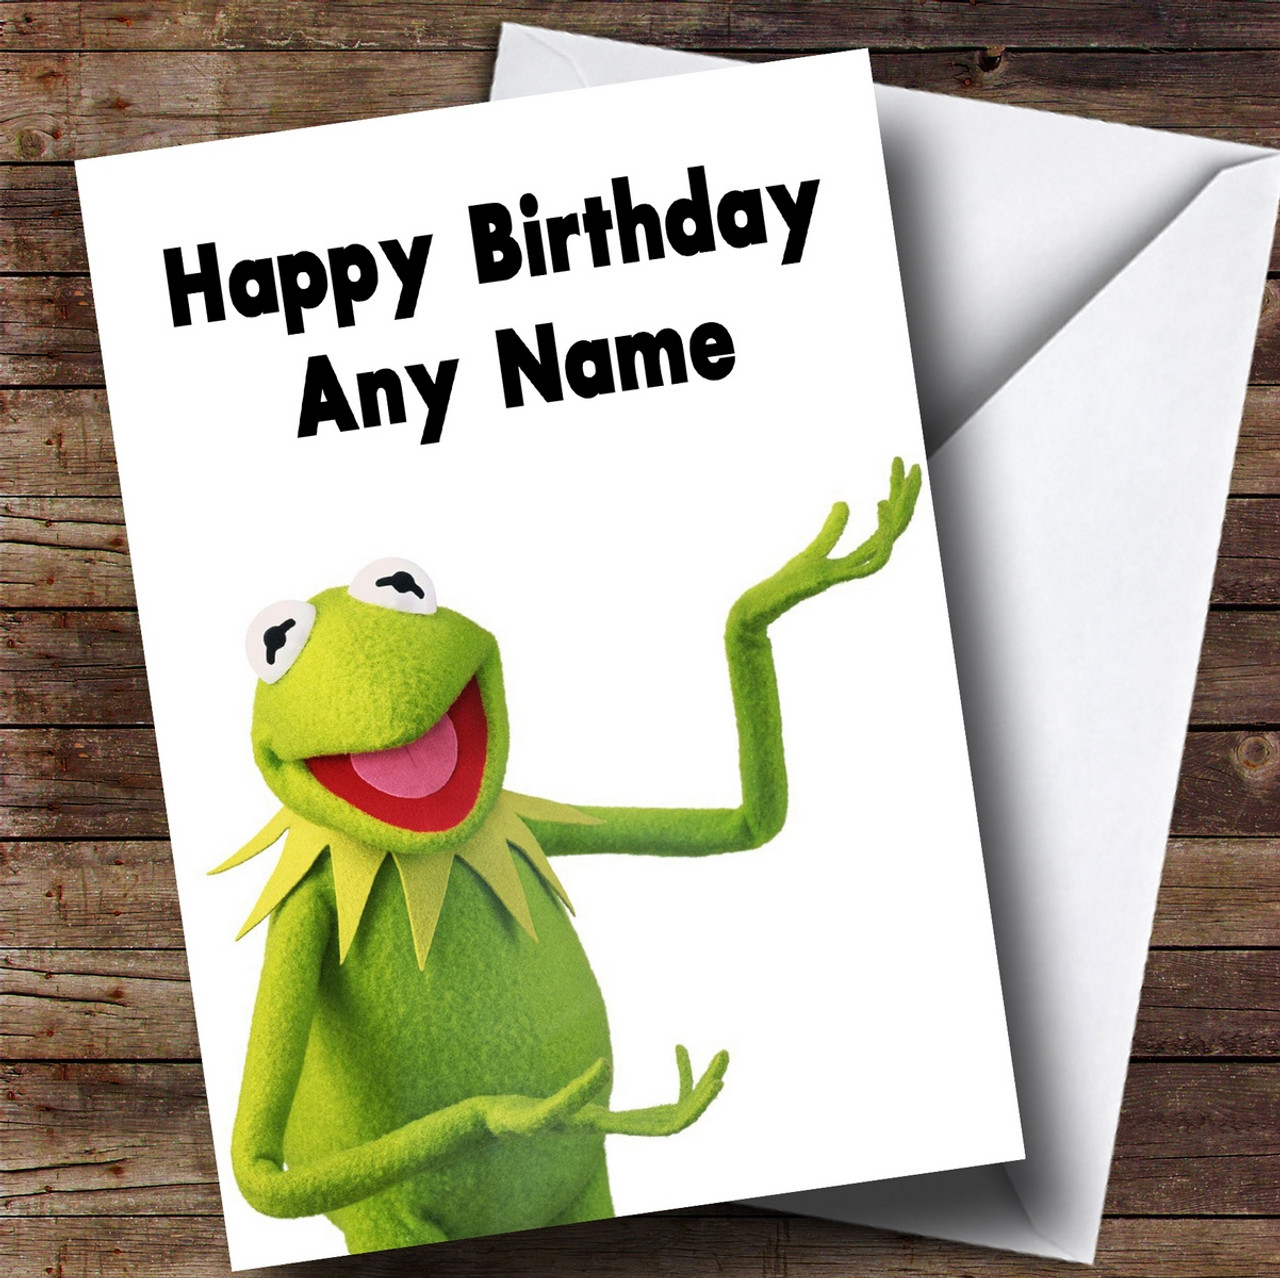 Personalised kermit the frog muppets childrens birthday card the personalised kermit the frog muppets childrens birthday card m4hsunfo